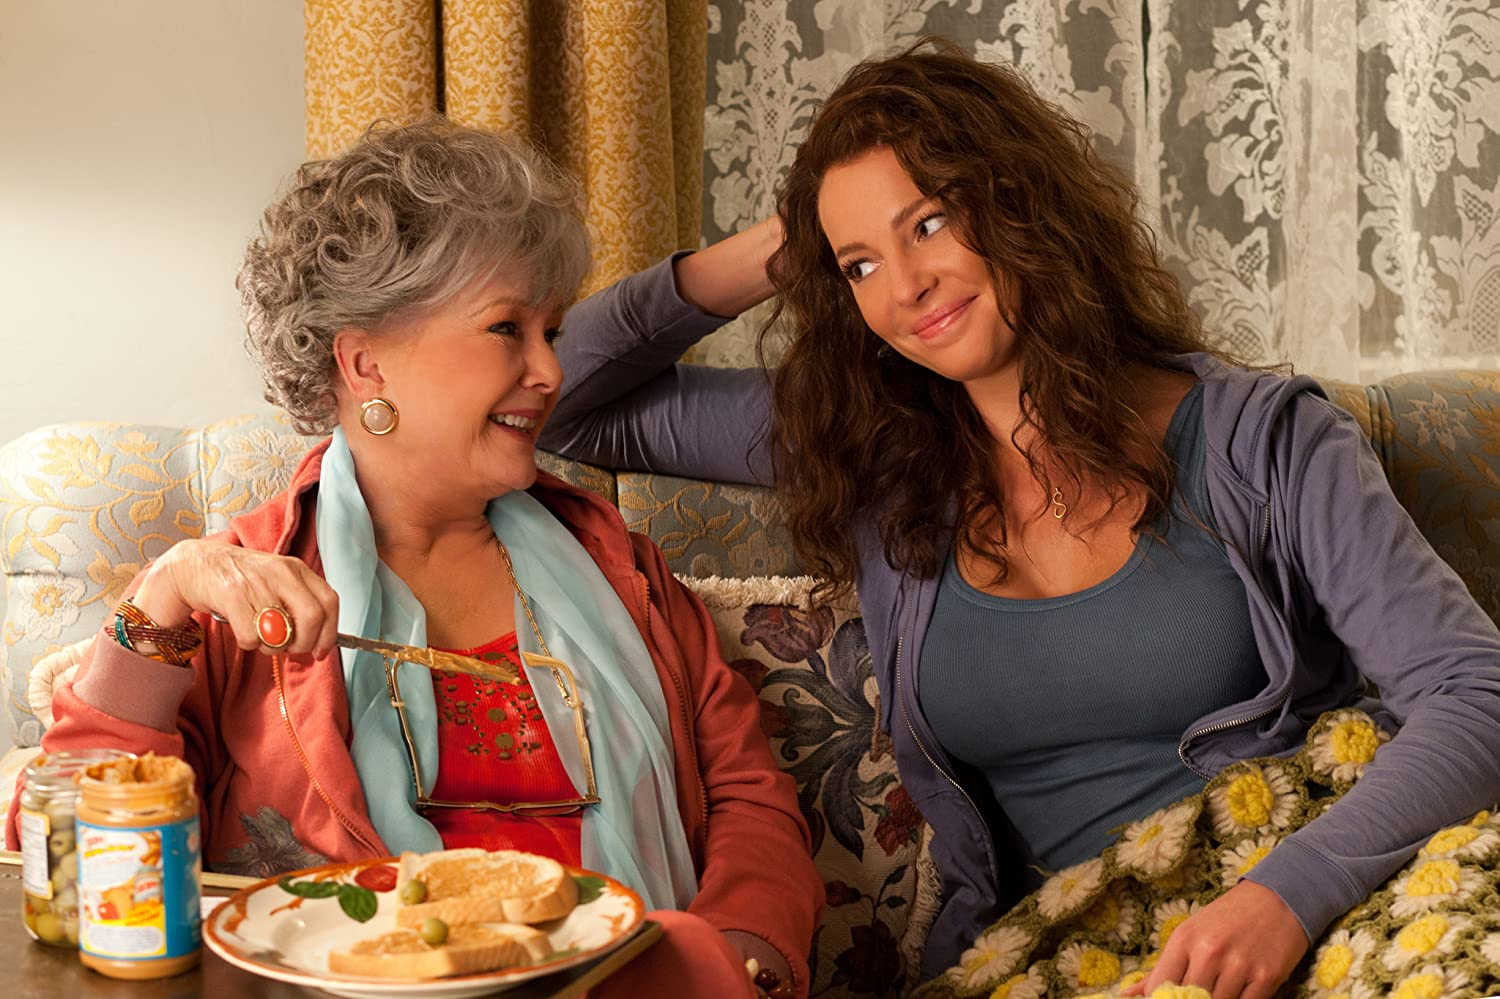 Katherine Heigl and Debbie Reynolds in One for the Money (2012)